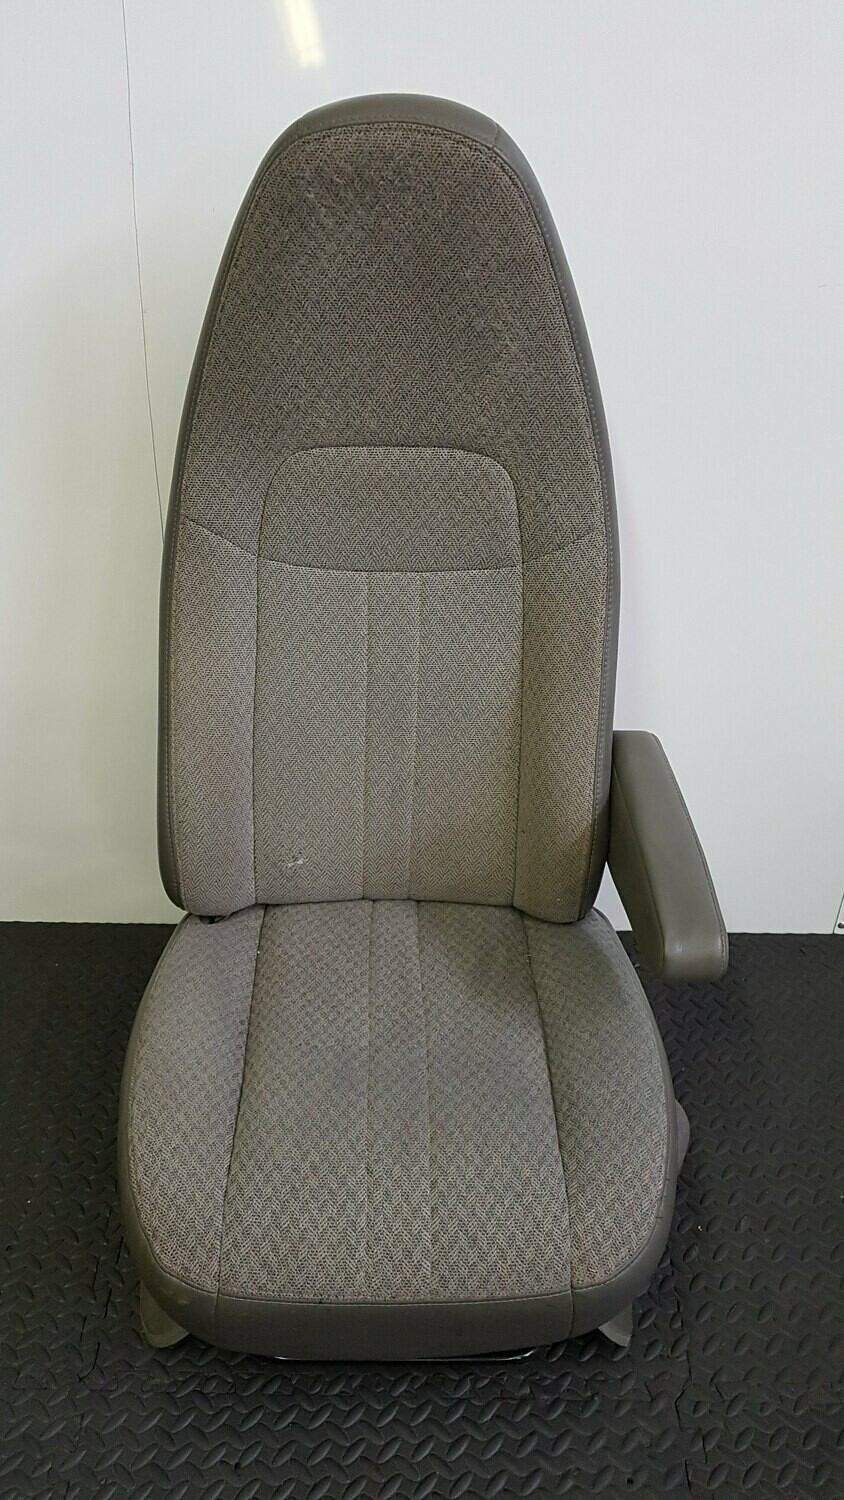 Chevy Express Passenger Seat